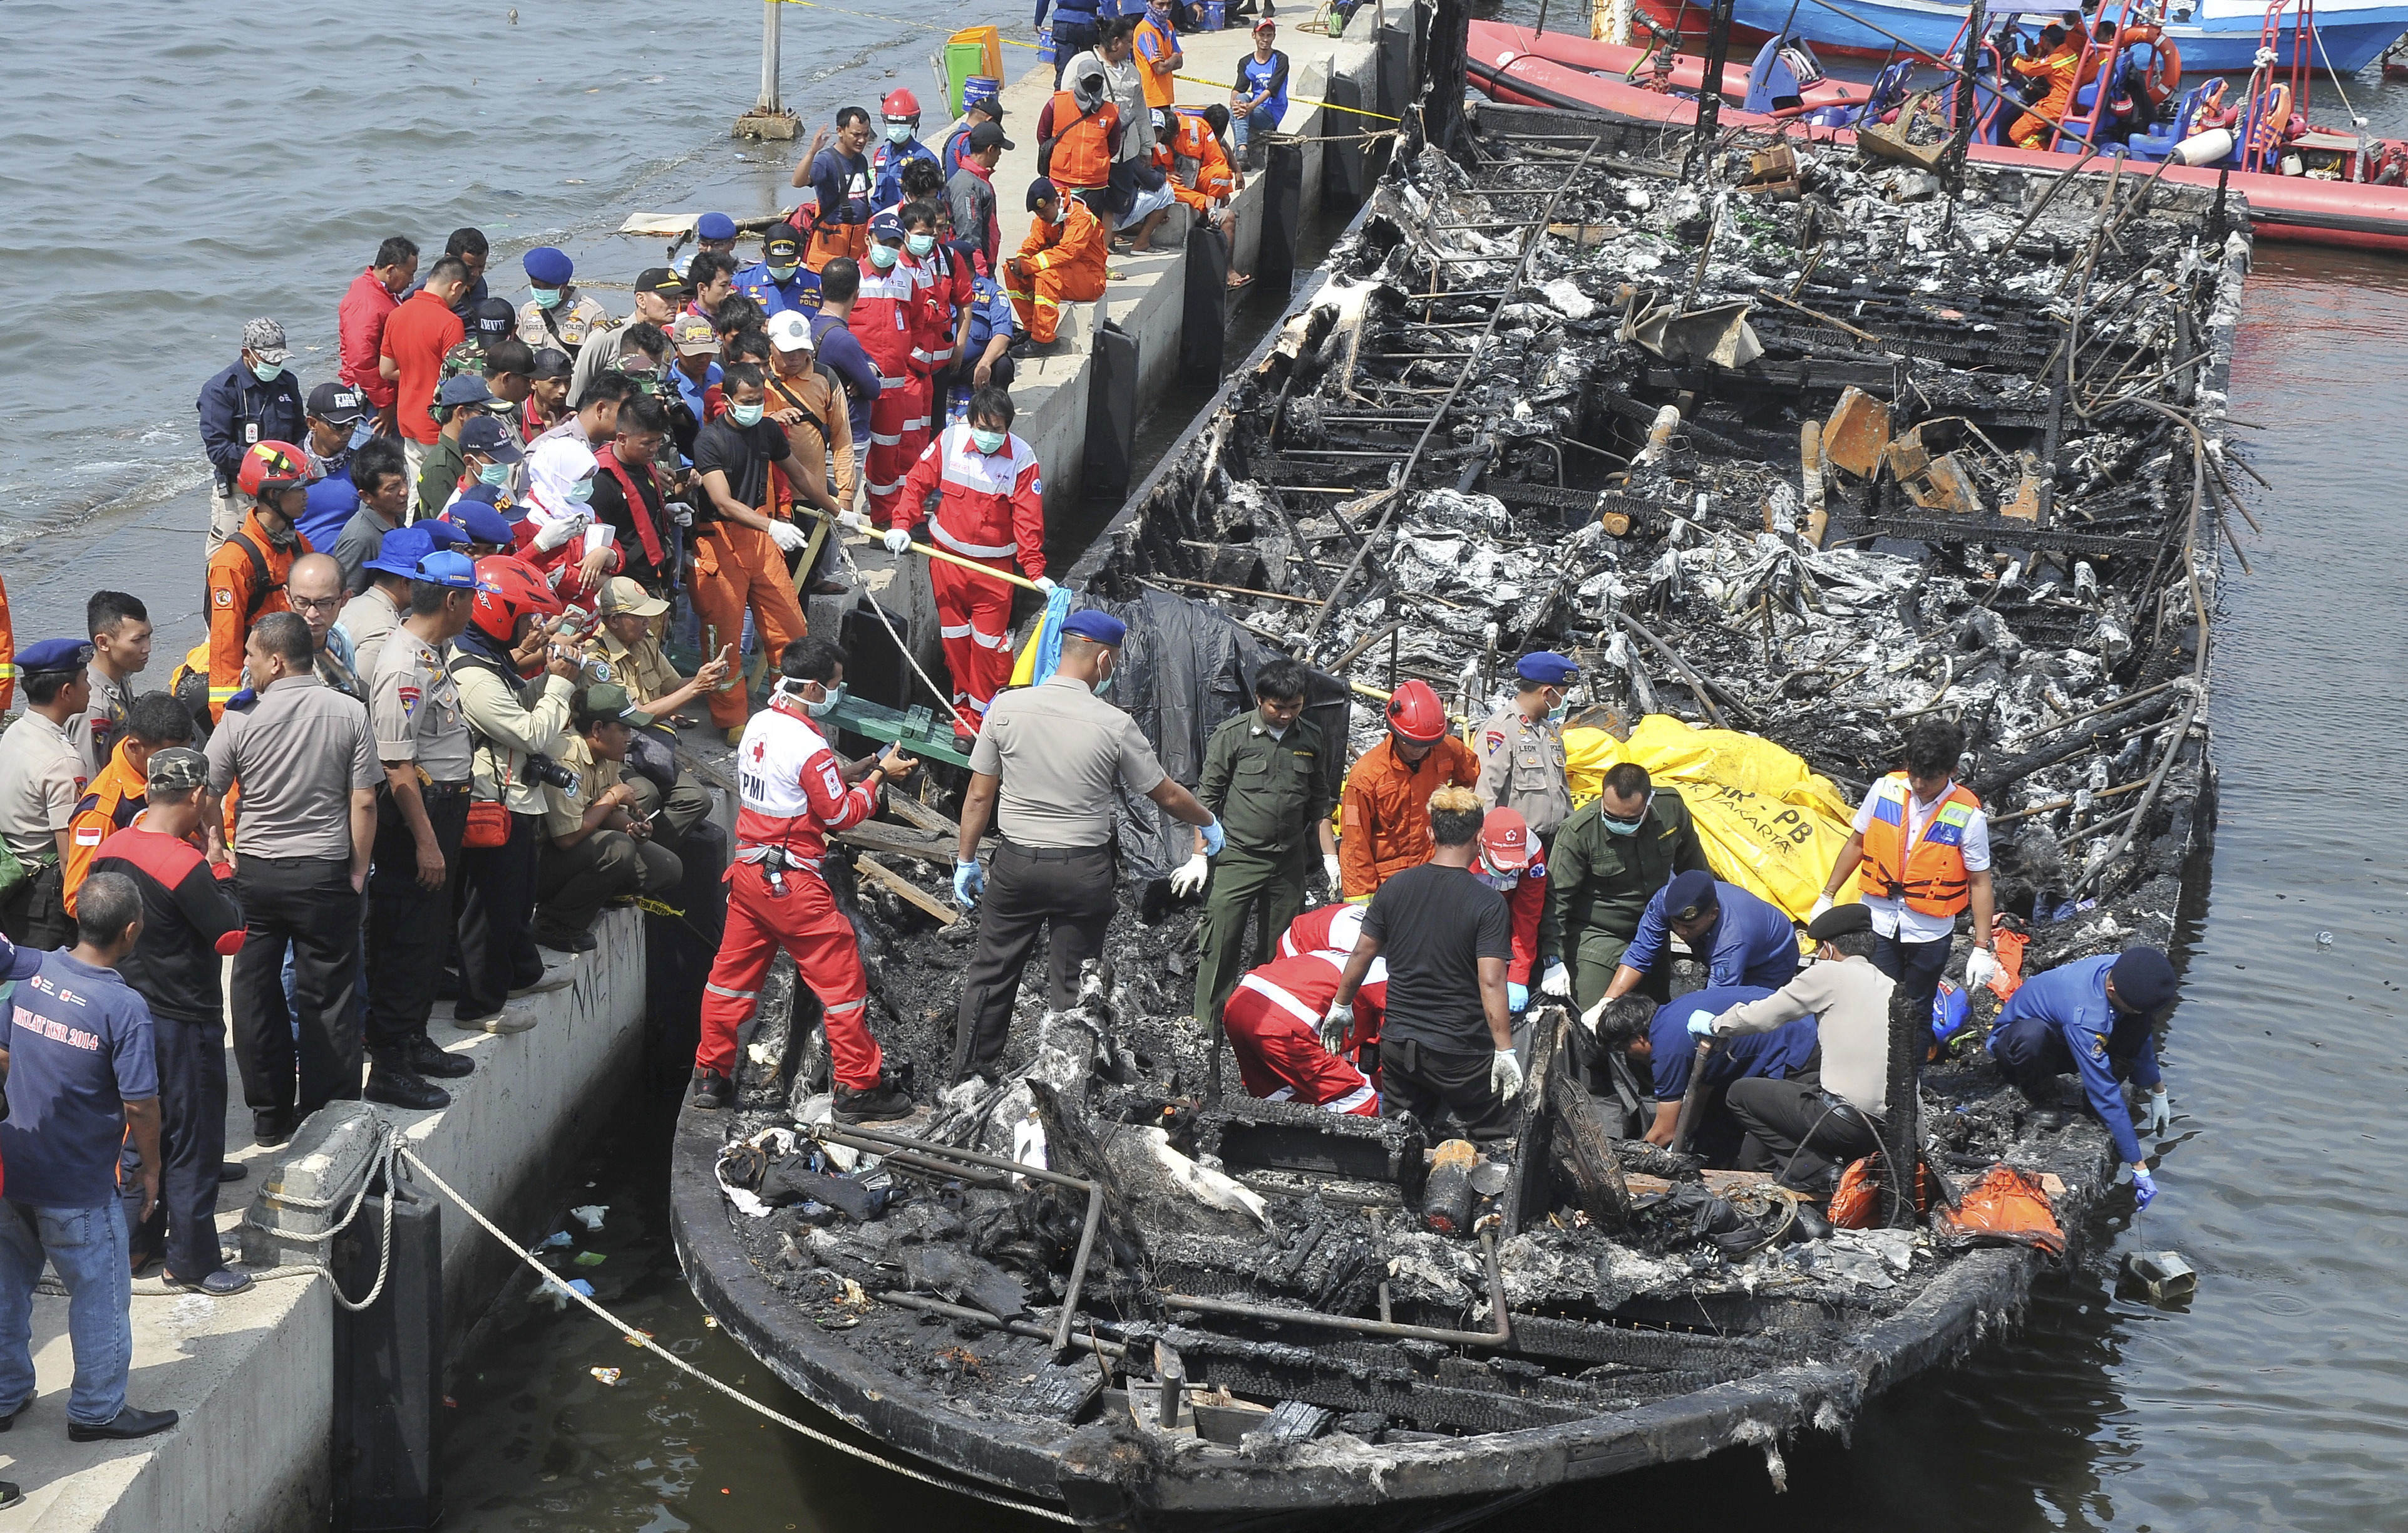 Rescuers search for victims from the wreckage of a ferry that caught fire off the coast of Jakarta on Jan. 1, 2017.